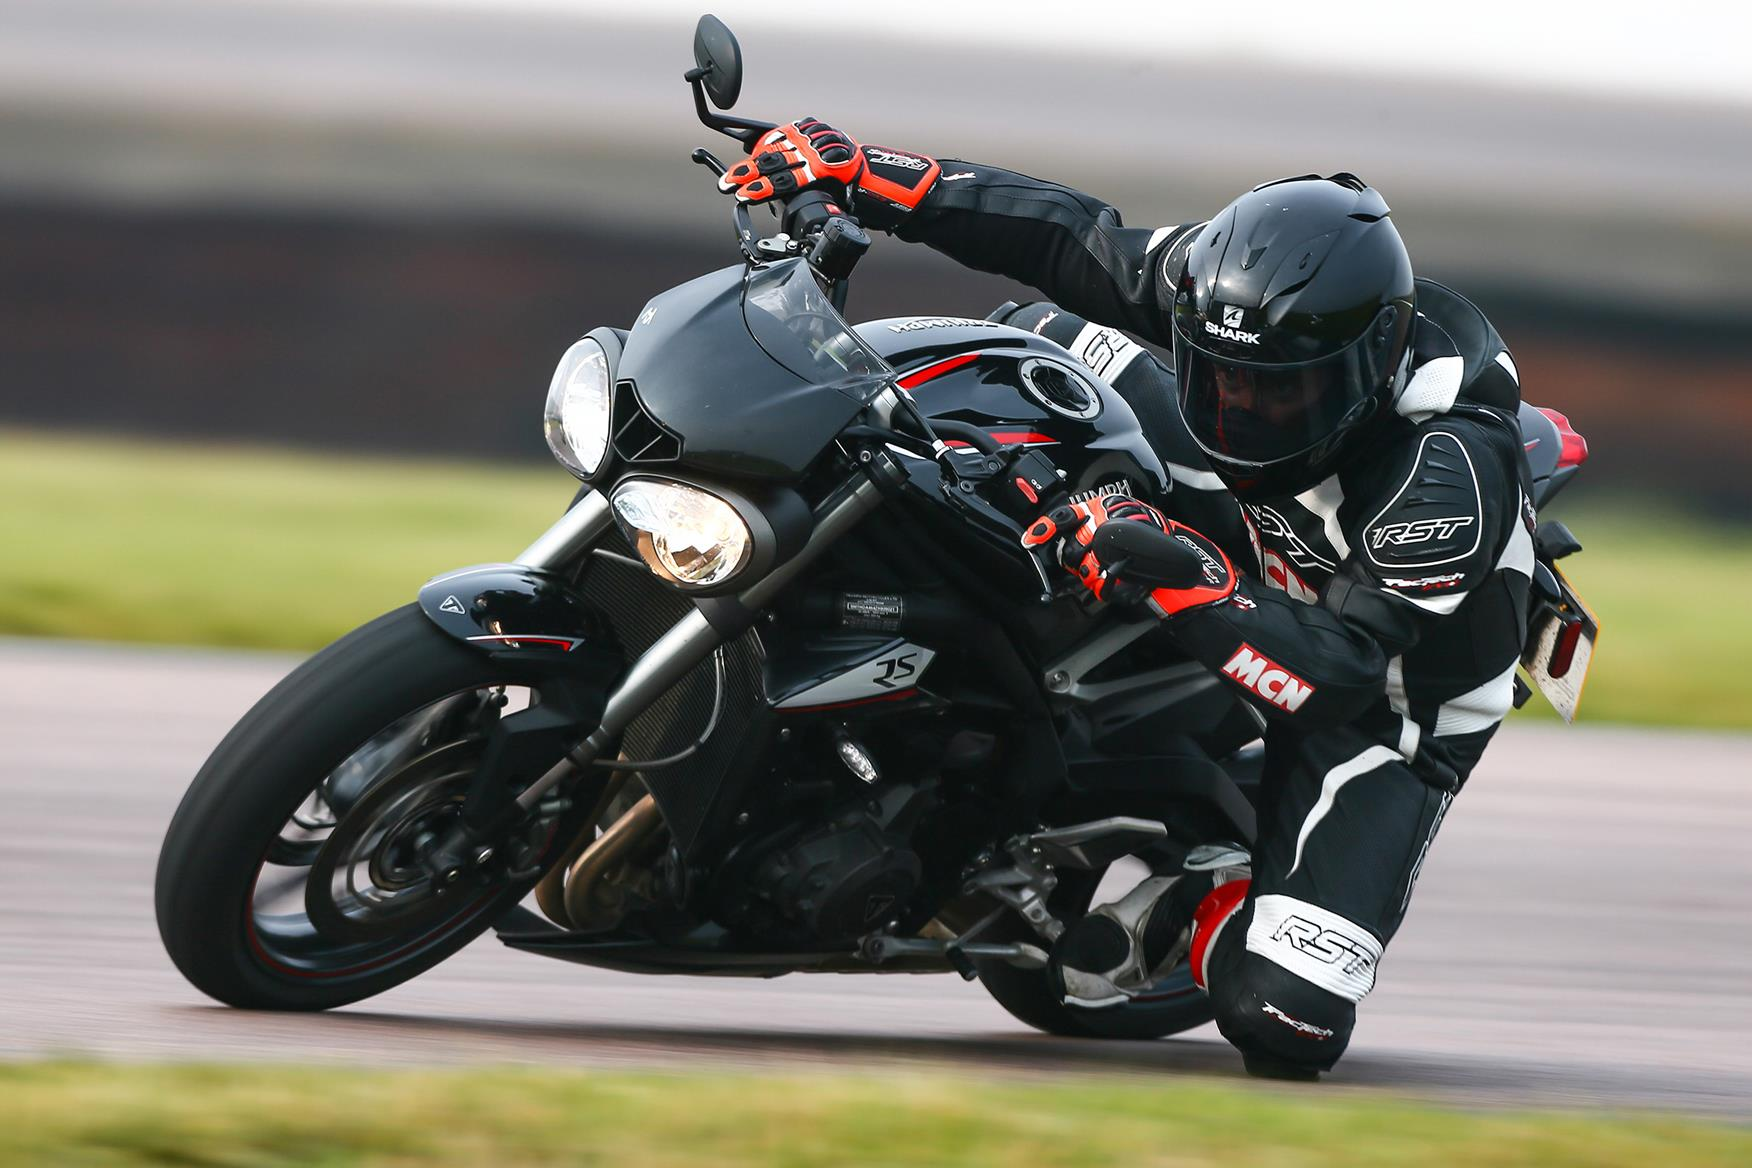 MCN Photographer Joe Dick on his Triumph Street Triple RS